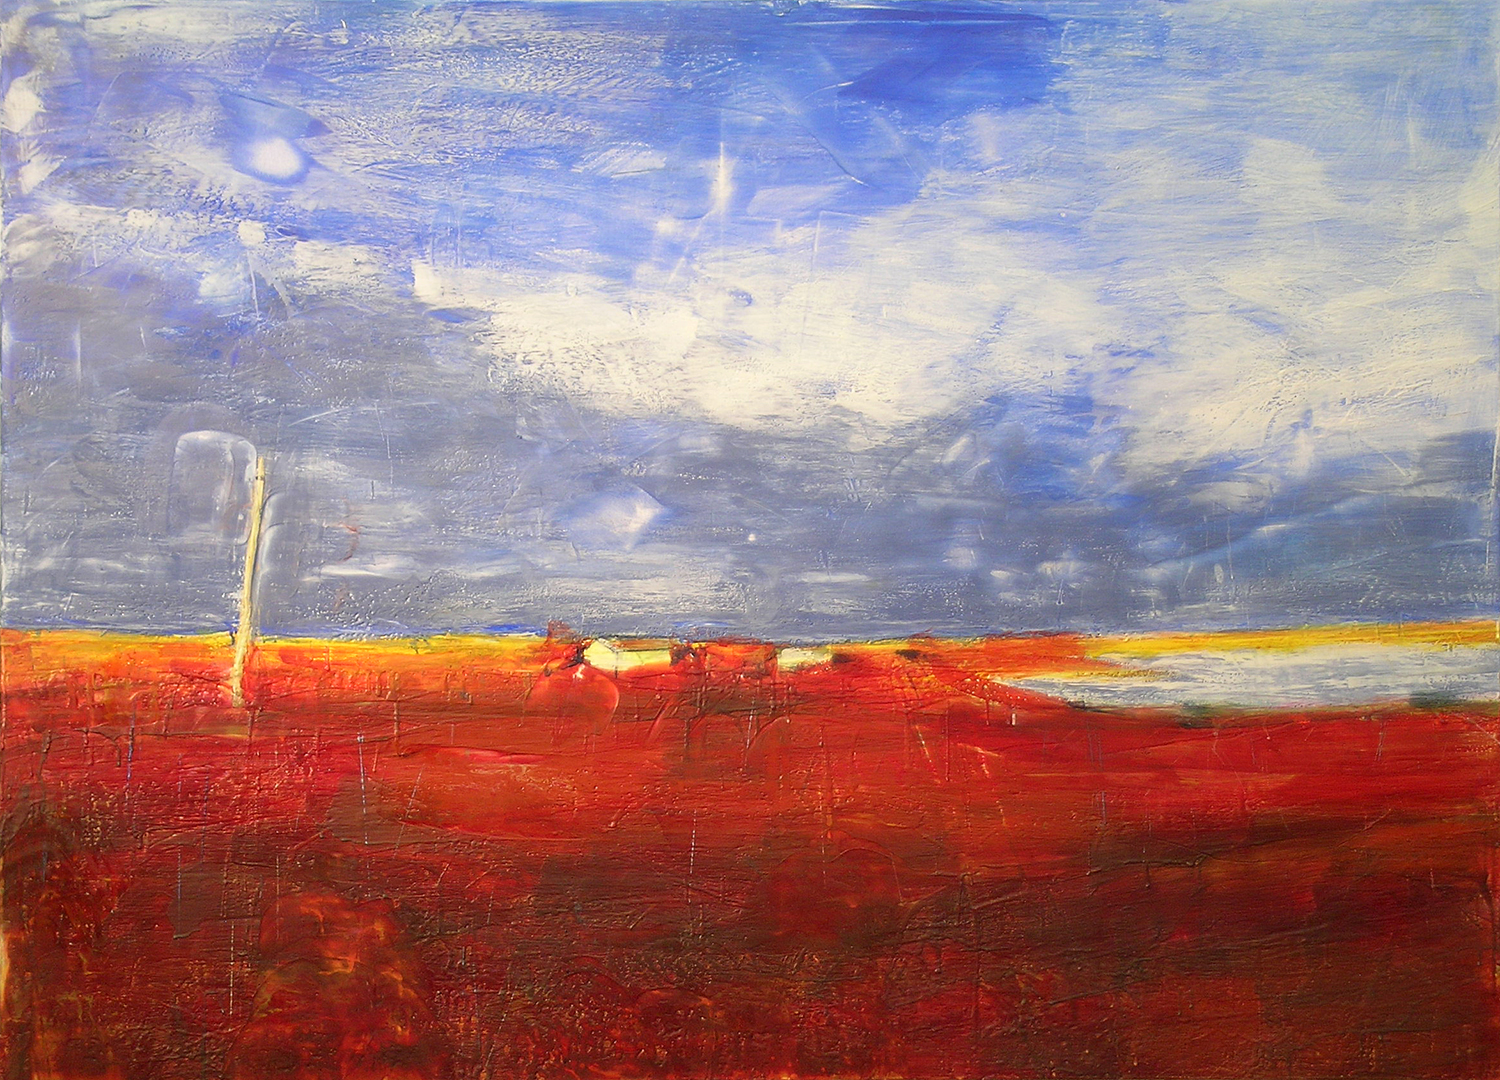 "Hilda and Louie's Place, Spirit Lake, Oil, Pigment, beeswax, Microcrystalline Wax and Dammar Resin on Canvas, 72"" x 50"""